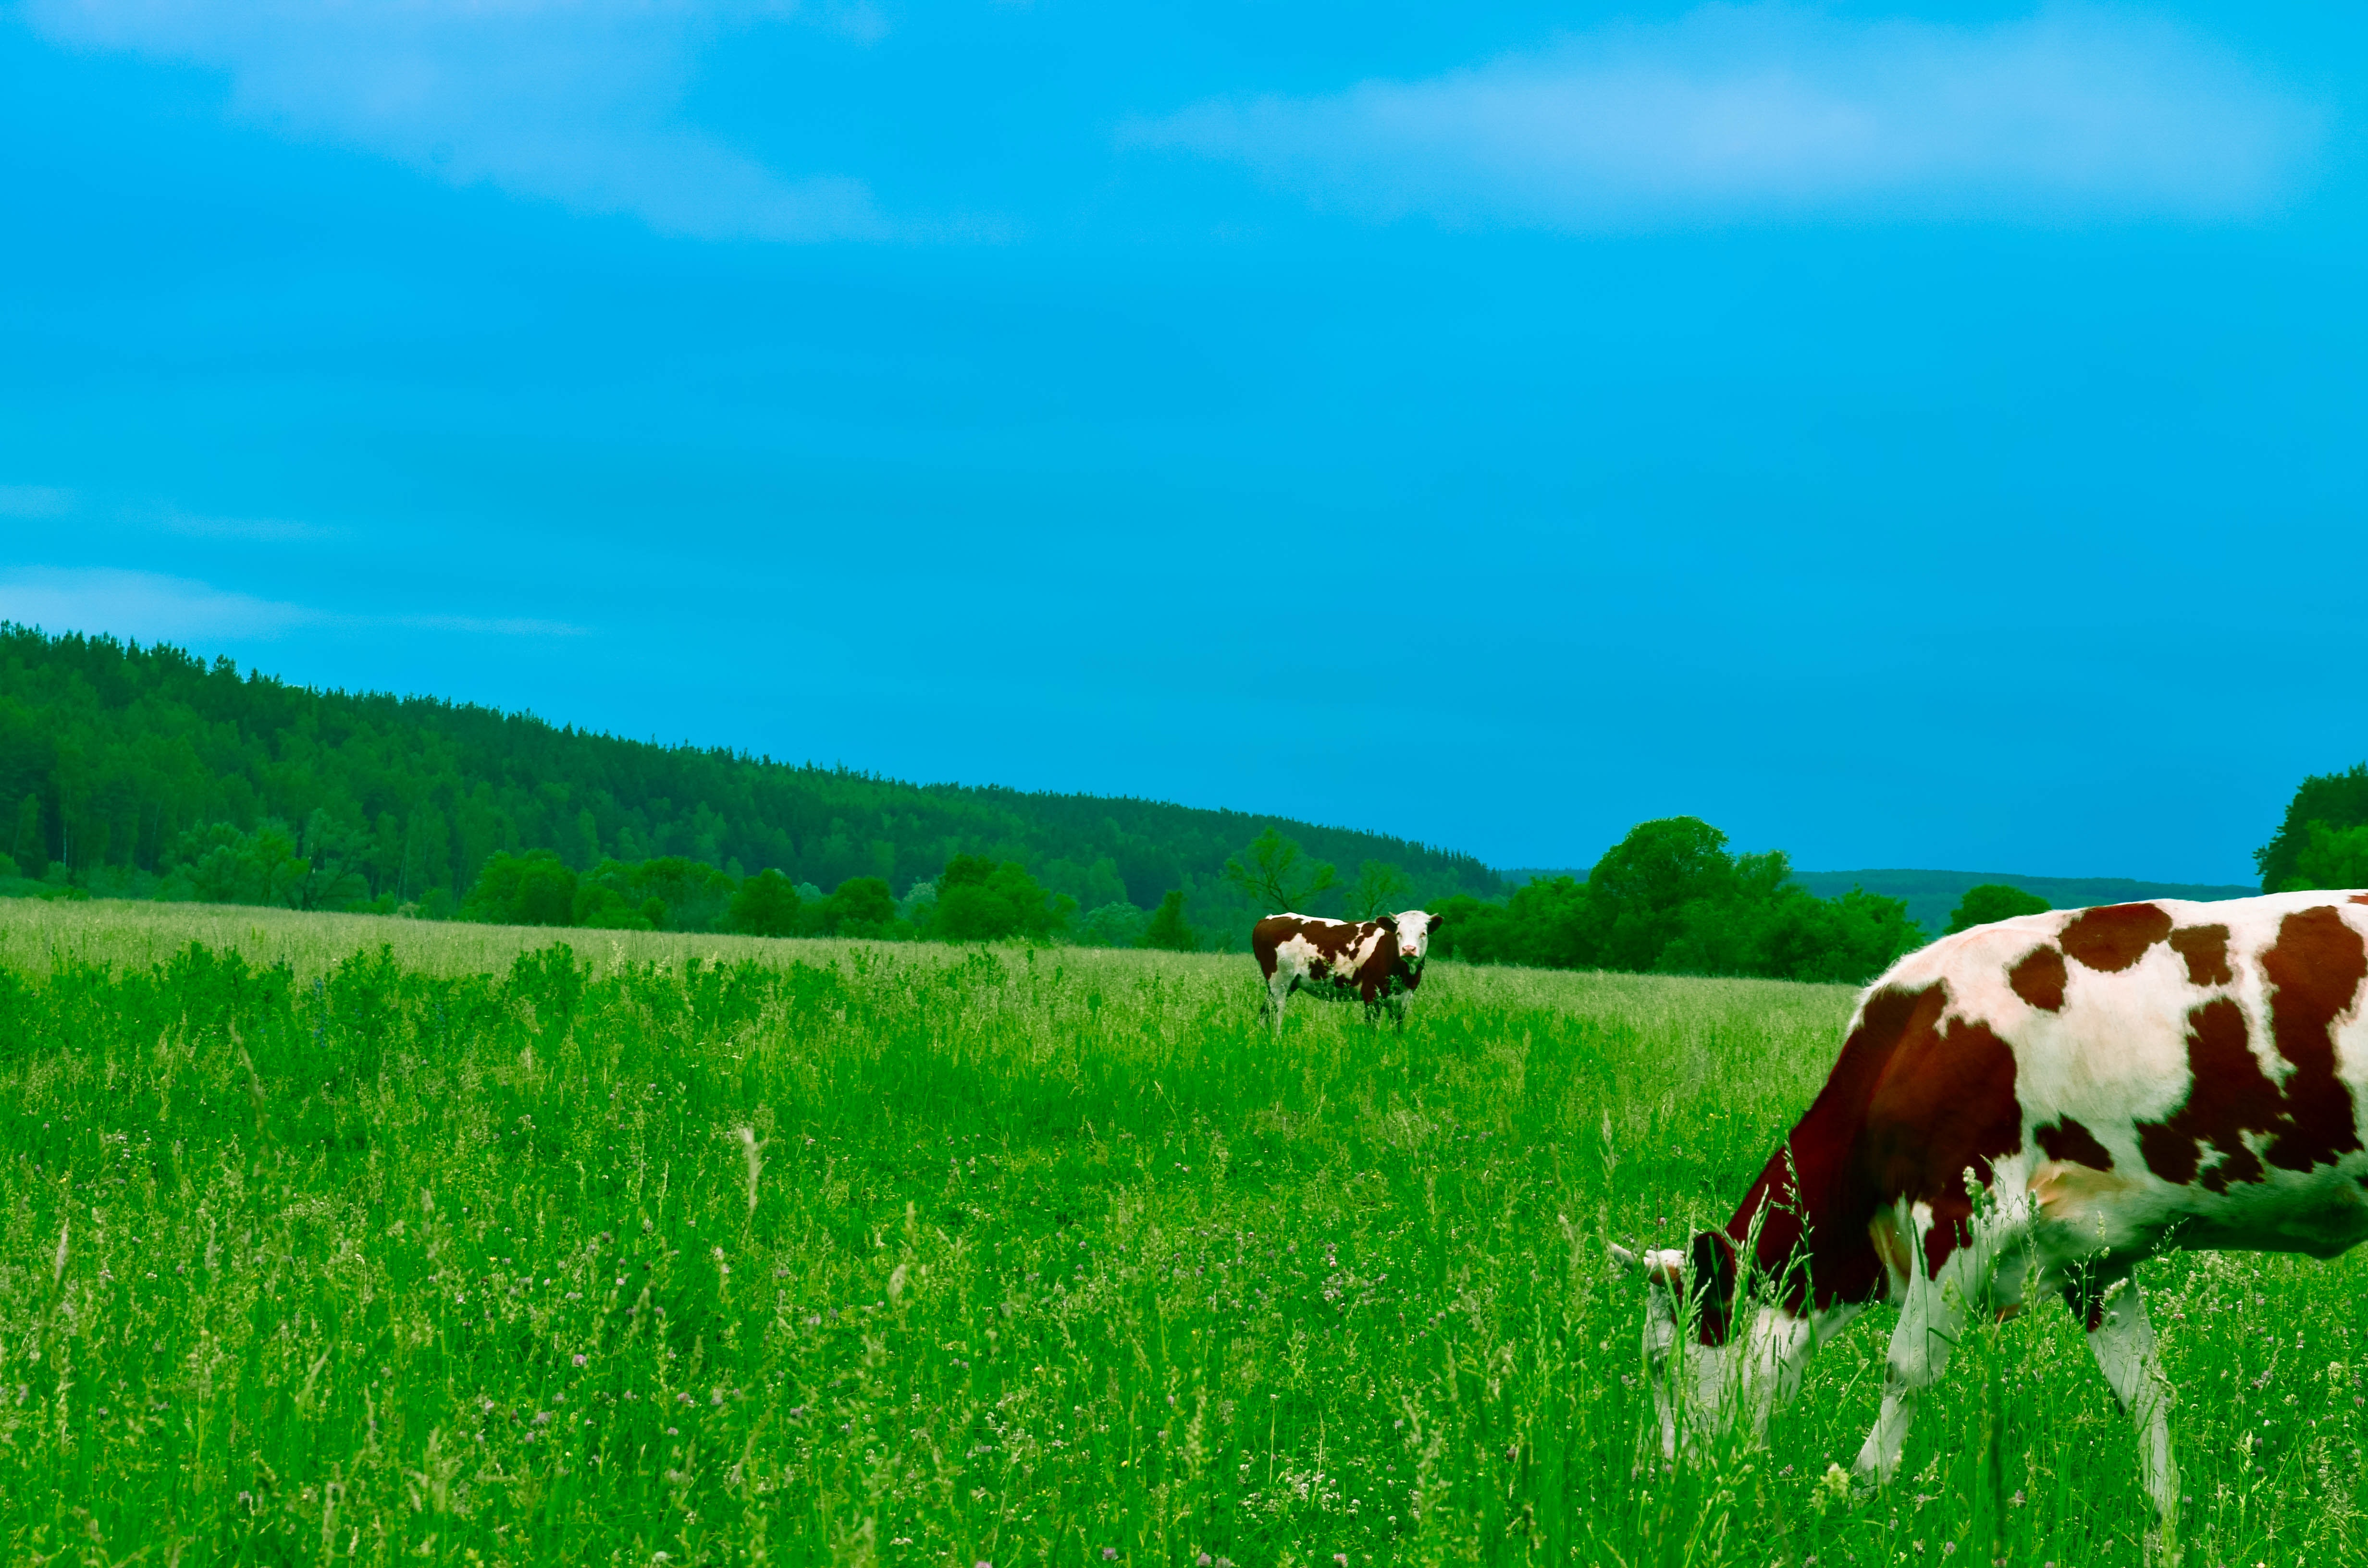 cows-grazing-on-field-against-sky-254178